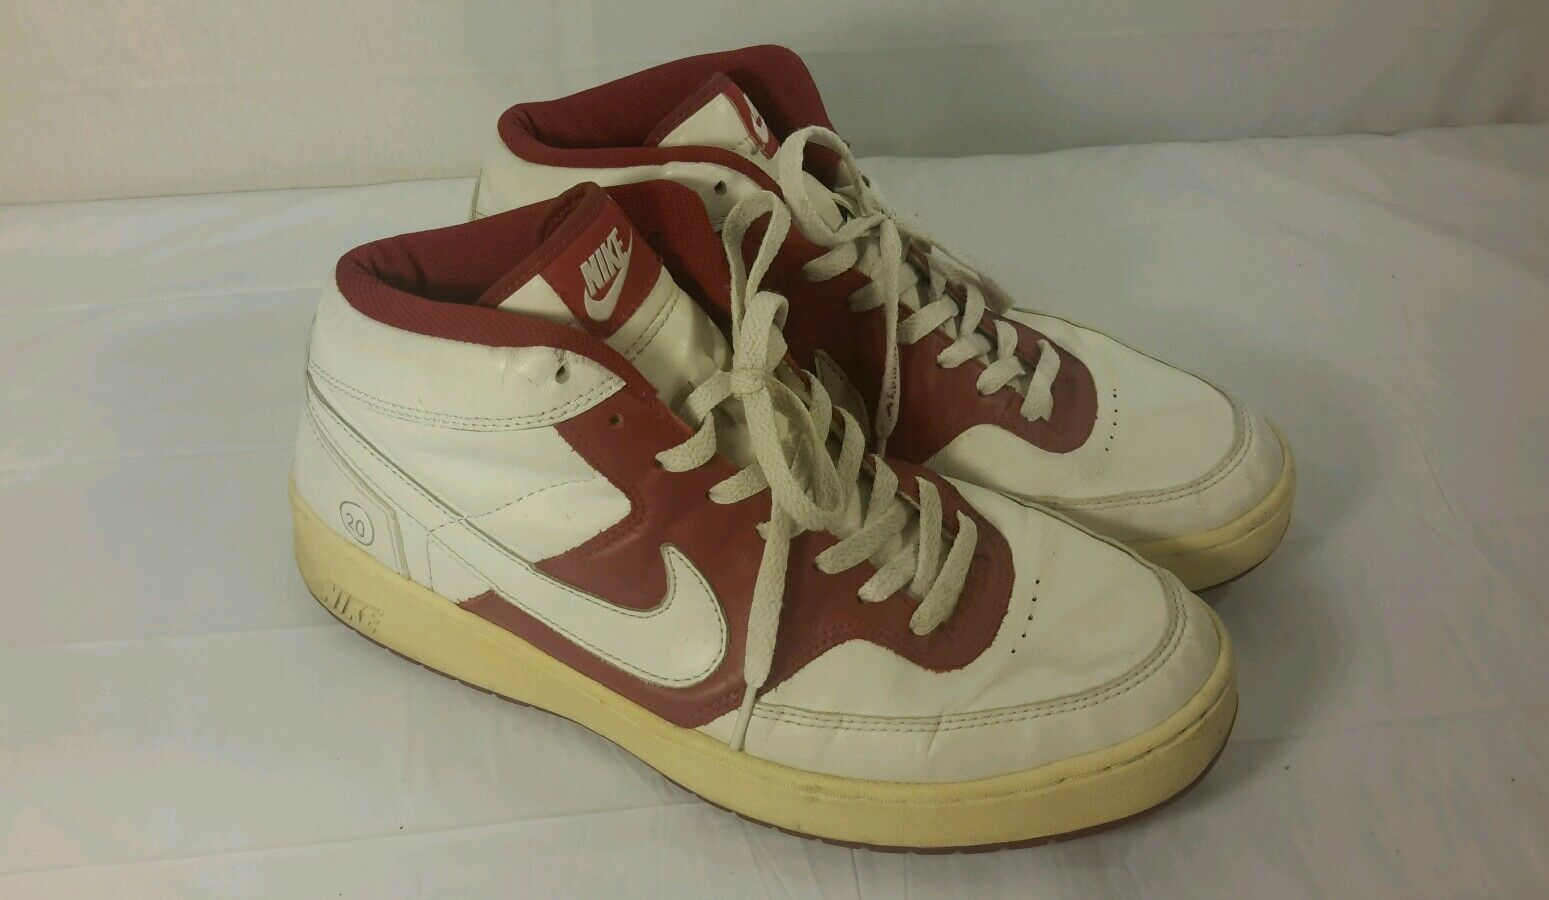 Men's Nike Twenty Red White High Top Athletic Shoes Comfortable  Seasonal price cuts, discount benefits